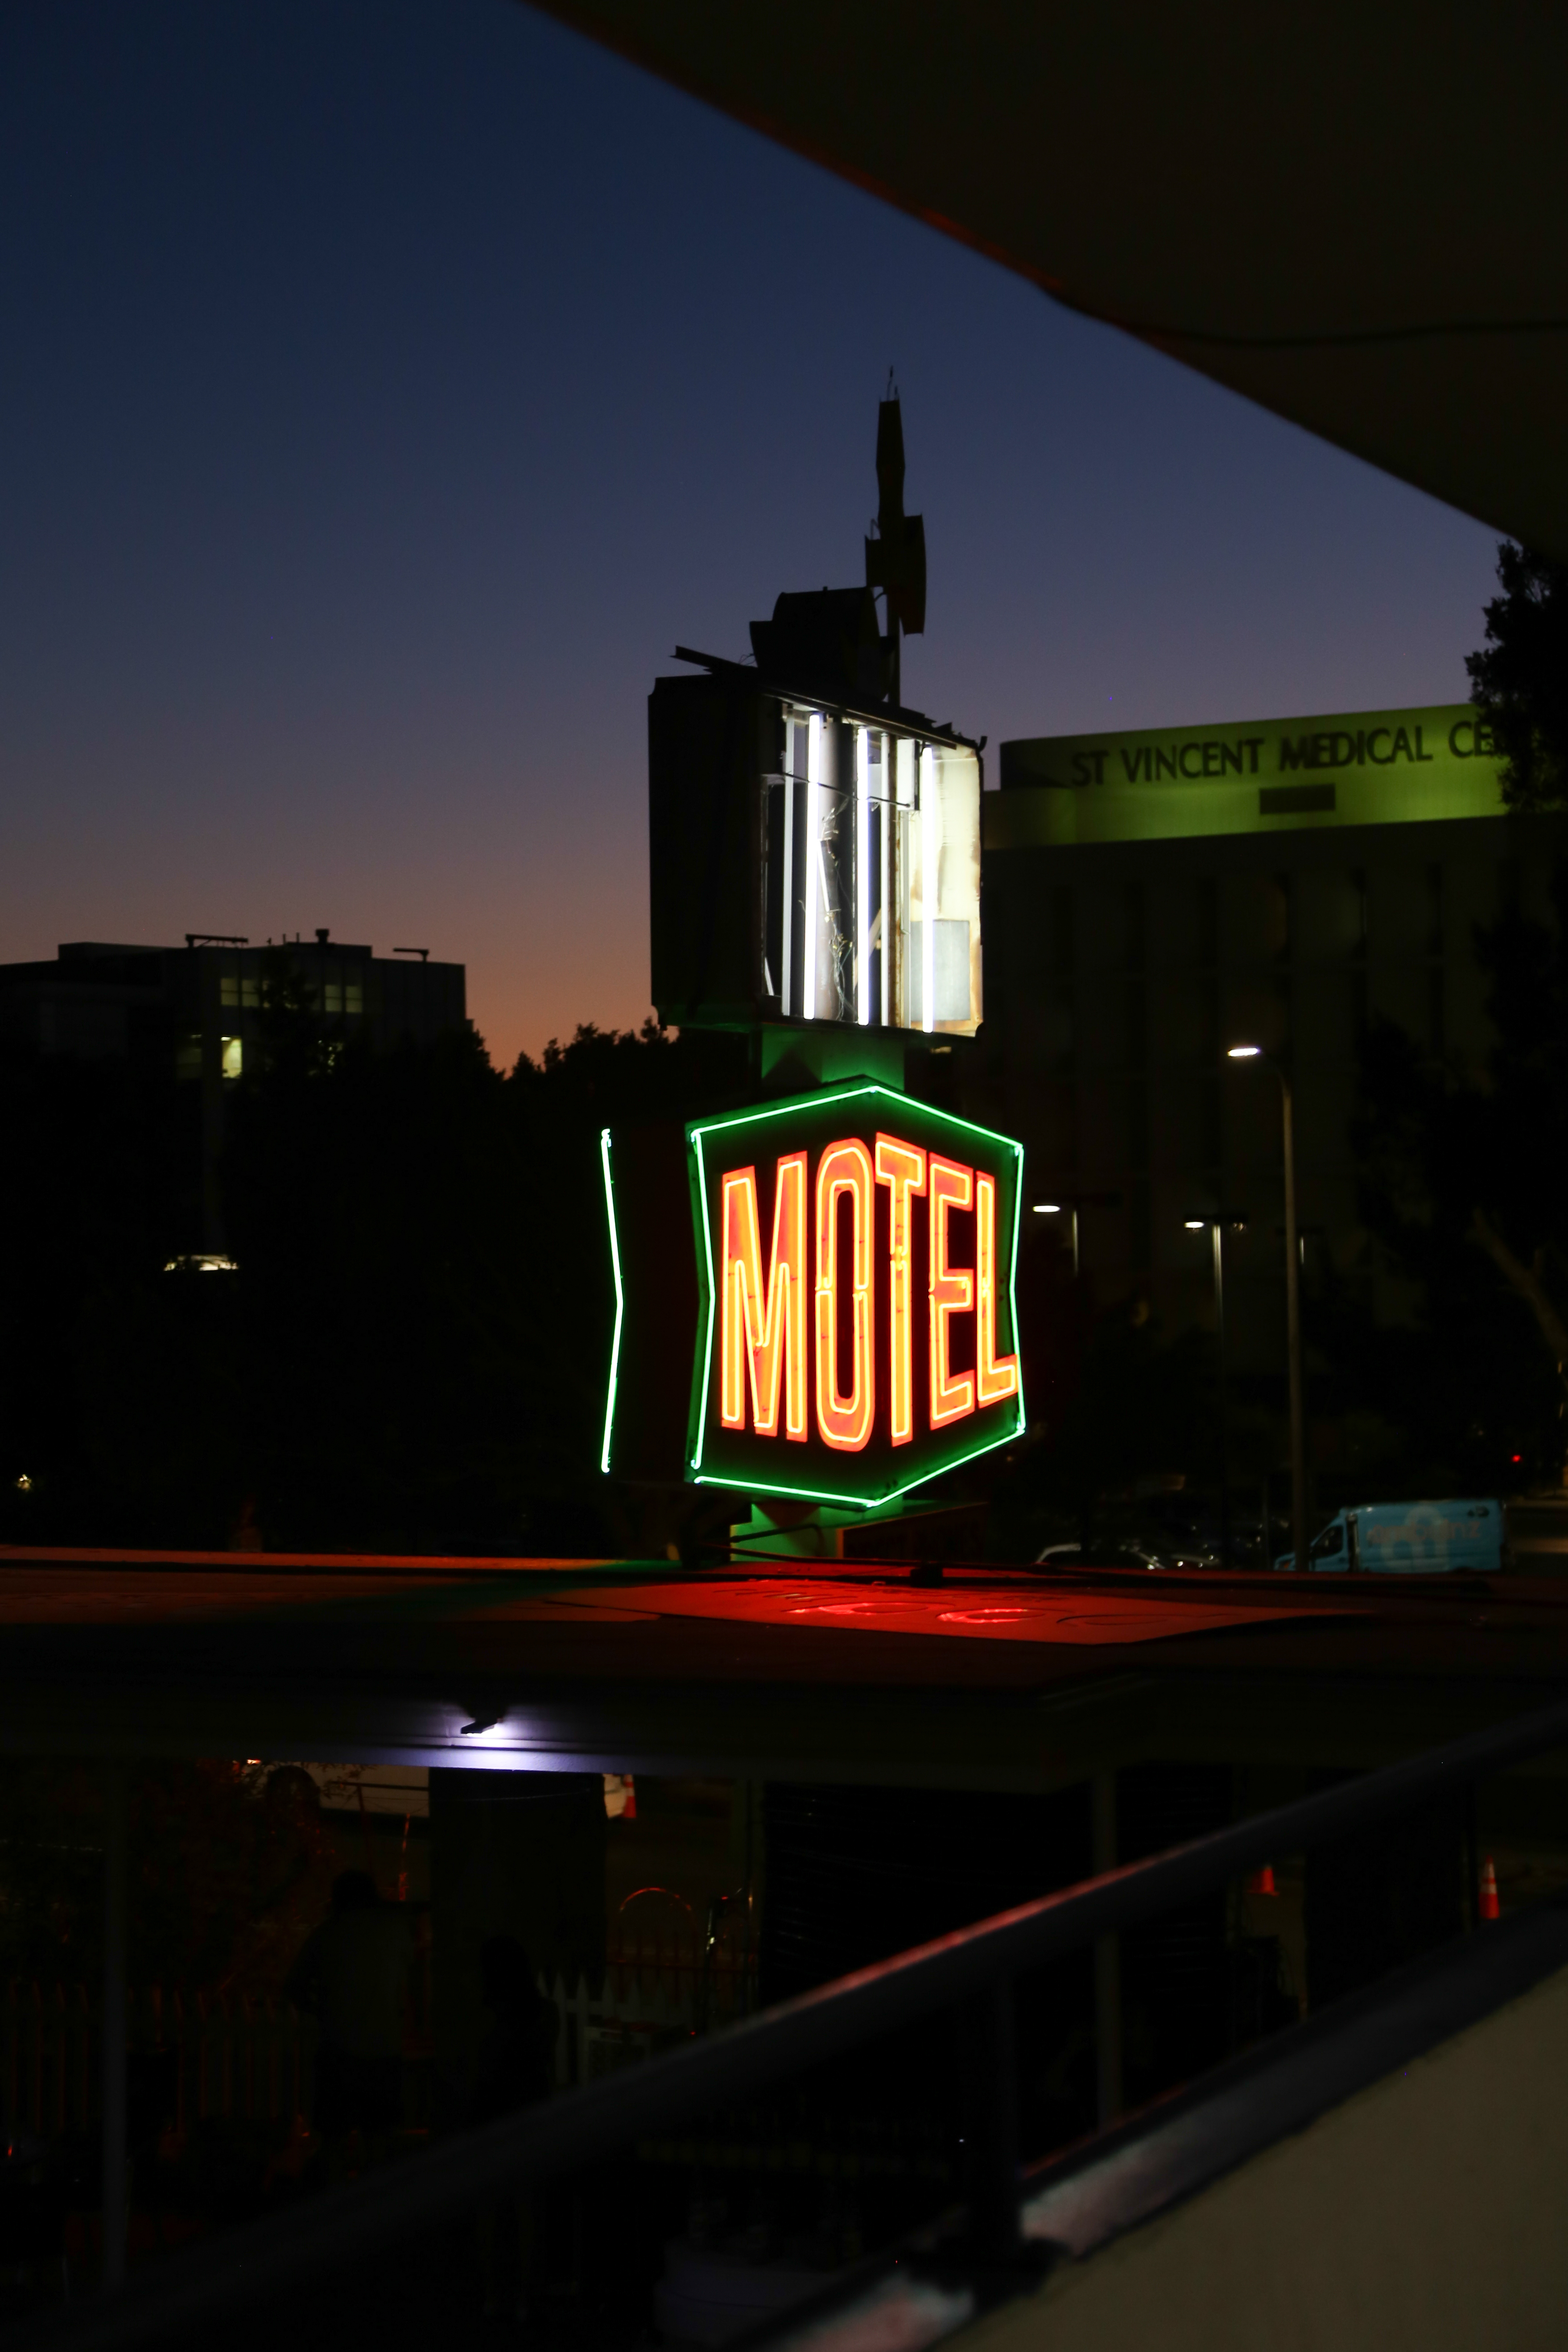 a neon light symbol with green borders and yellow text reading Motel